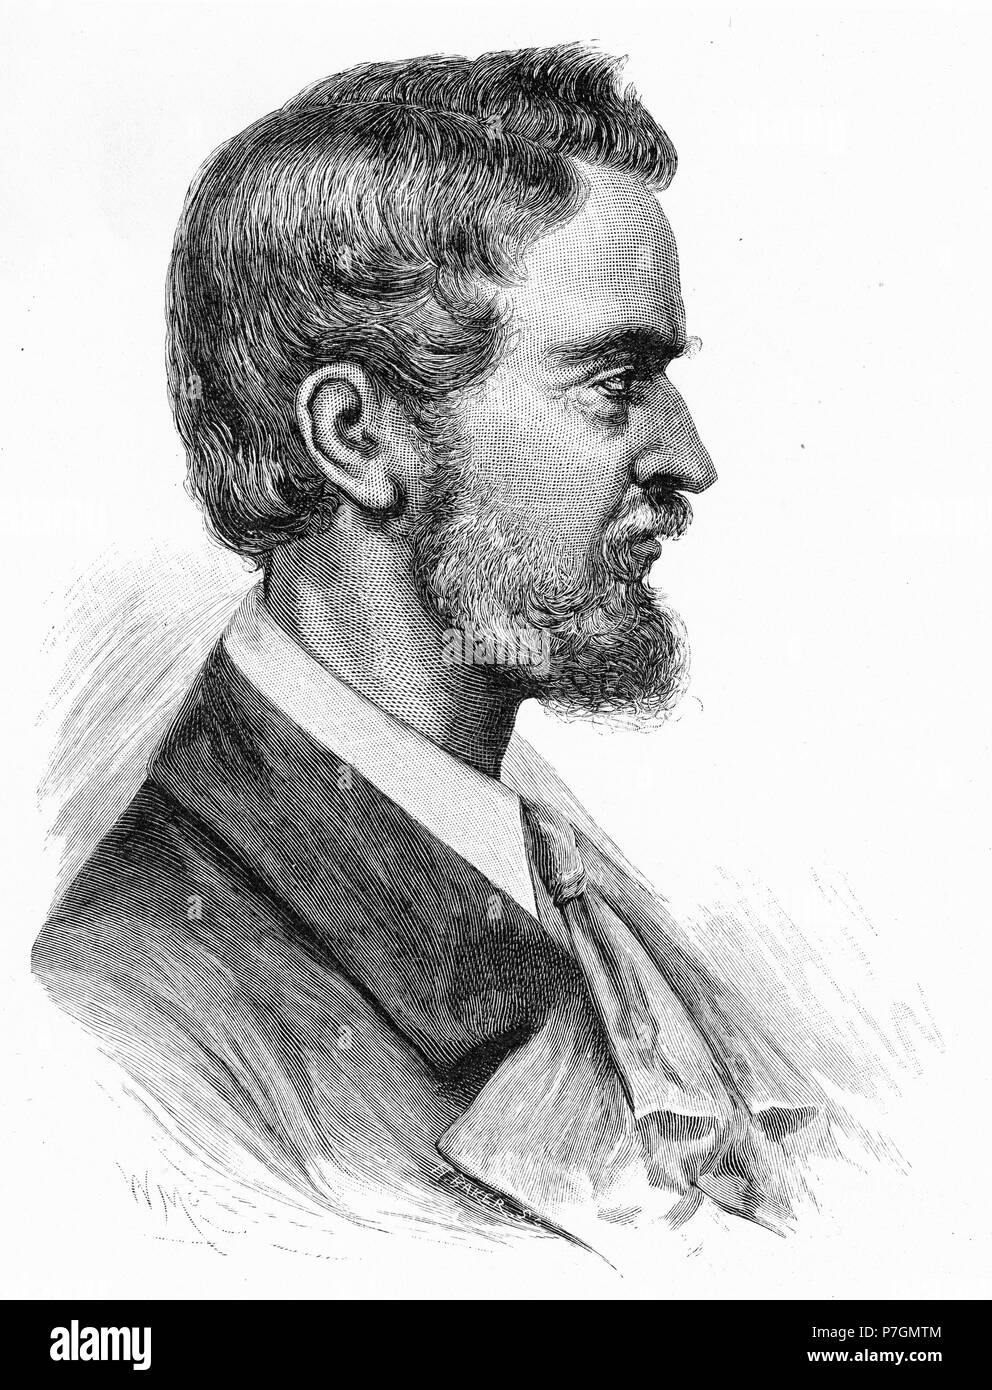 Engraving of the German explorer Friedrich Willem Ludwig Leichhardt (1813-48) famed for his expeditions into central Australia. From the Picturesque Atlas of Australasia Vol 2, 1886 - Stock Image